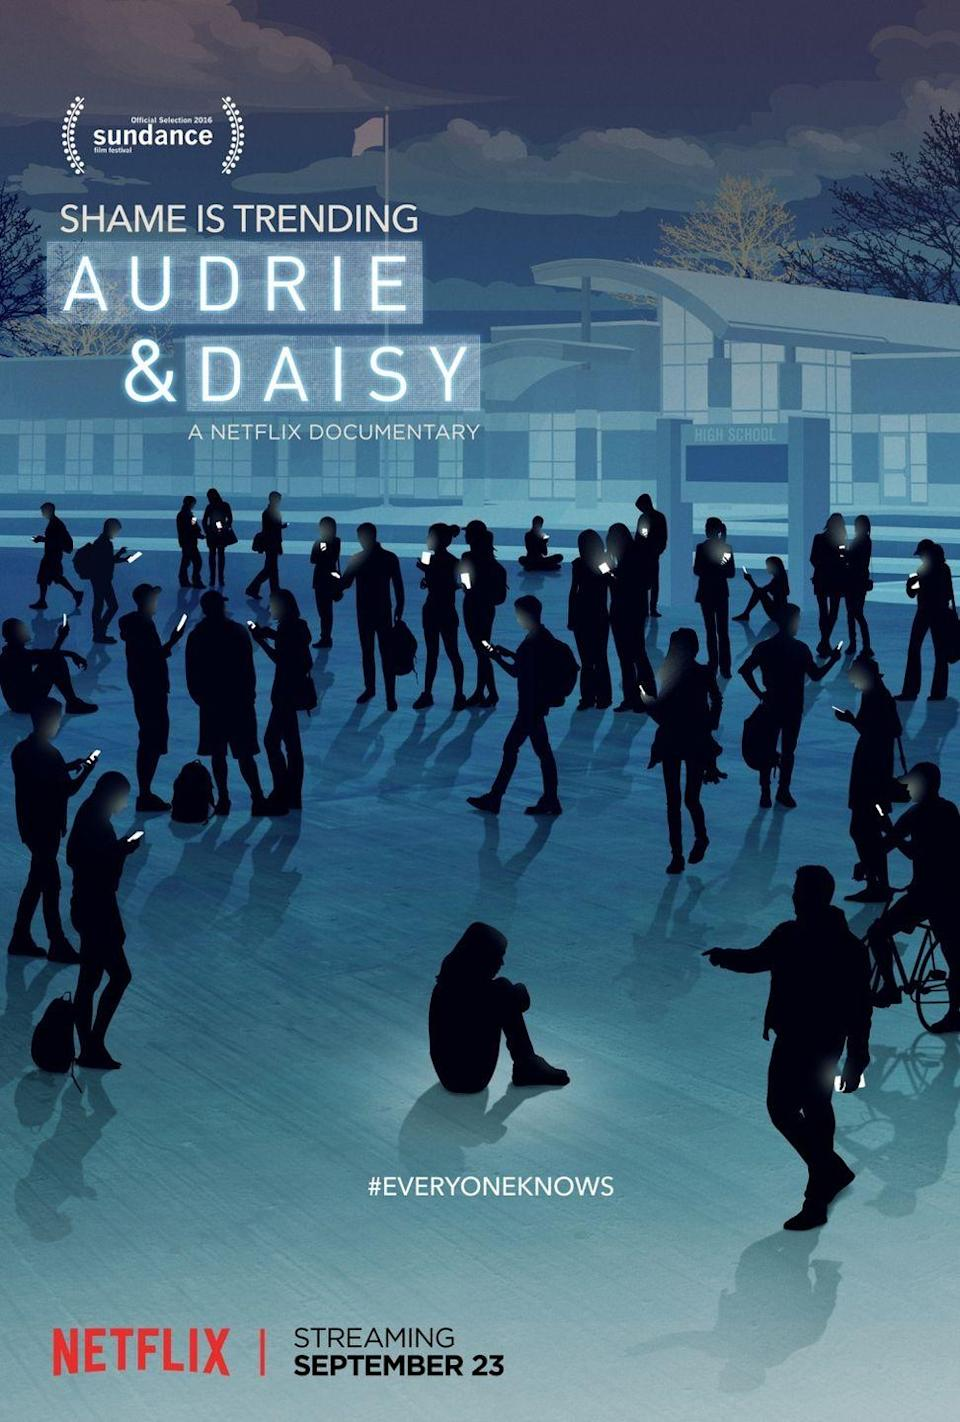 """<p>When two teen girls, Audrie Pott and Daisy Coleman are raped while unconscious, the people in the towns they live in are more concerned with protecting the boys who abused them instead of getting the girls justice. </p><p>Both endure online harassment and bullying. As a result, one of them commits suicide. In the documentary, Audrie Pott and her family describe what they went through, and how the justice system didn't do enough.</p><p><a class=""""link rapid-noclick-resp"""" href=""""https://www.netflix.com/title/80097321"""" rel=""""nofollow noopener"""" target=""""_blank"""" data-ylk=""""slk:Watch Now"""">Watch Now</a></p>"""